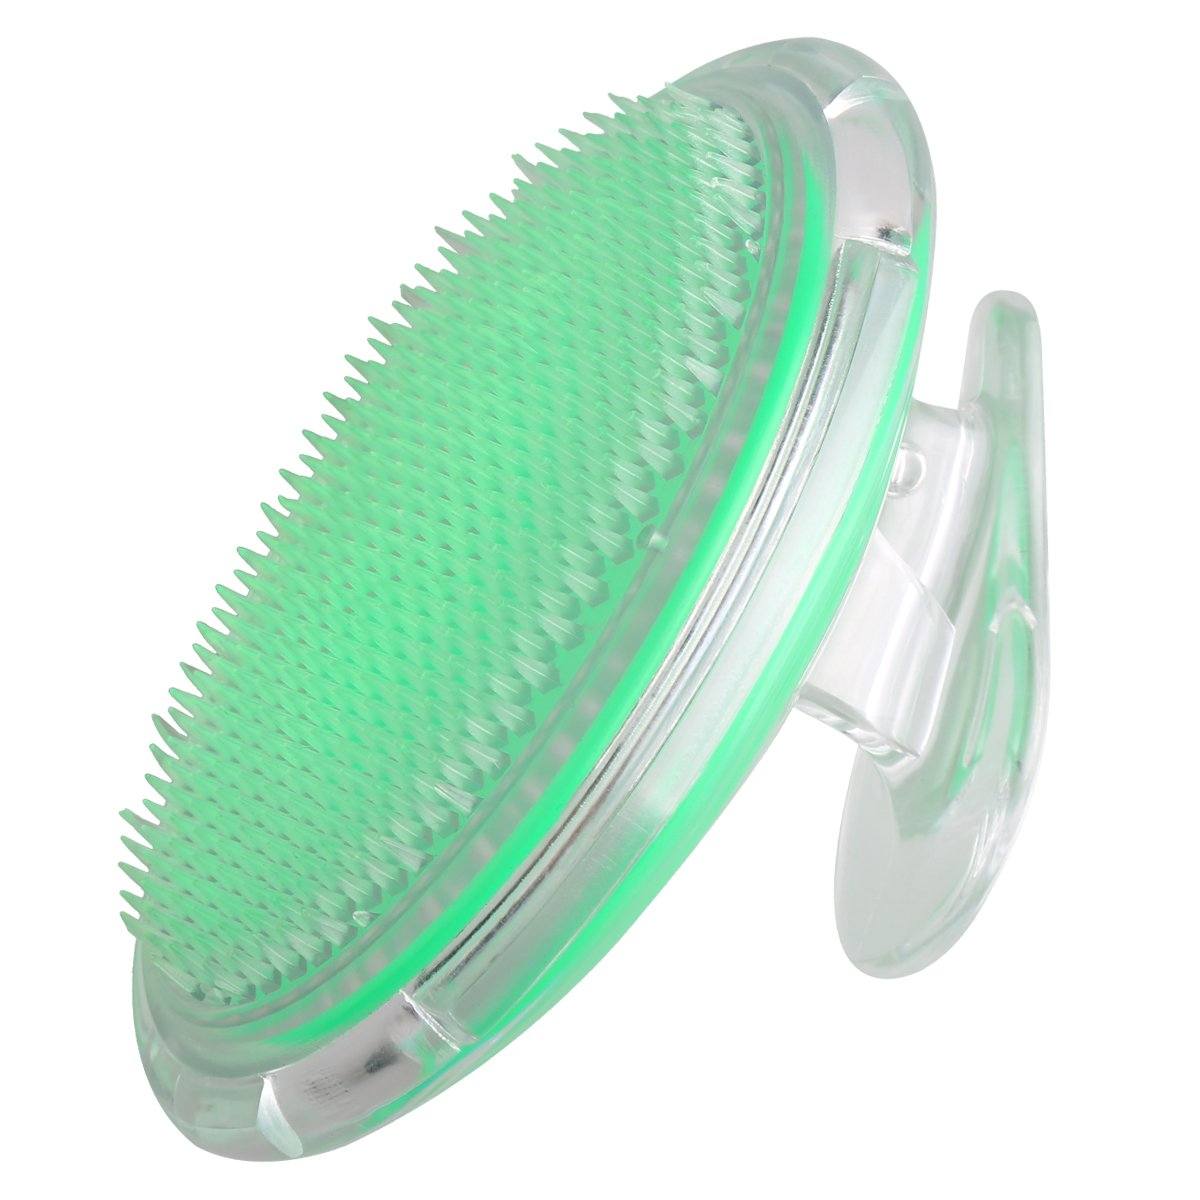 TailaiMei Exfoliating Brush for Ingrown Hair Treatment - To Treat and Prevent Bikini Bumps, Razor Bumps - Silky Smooth Skin Solution for Men and Women